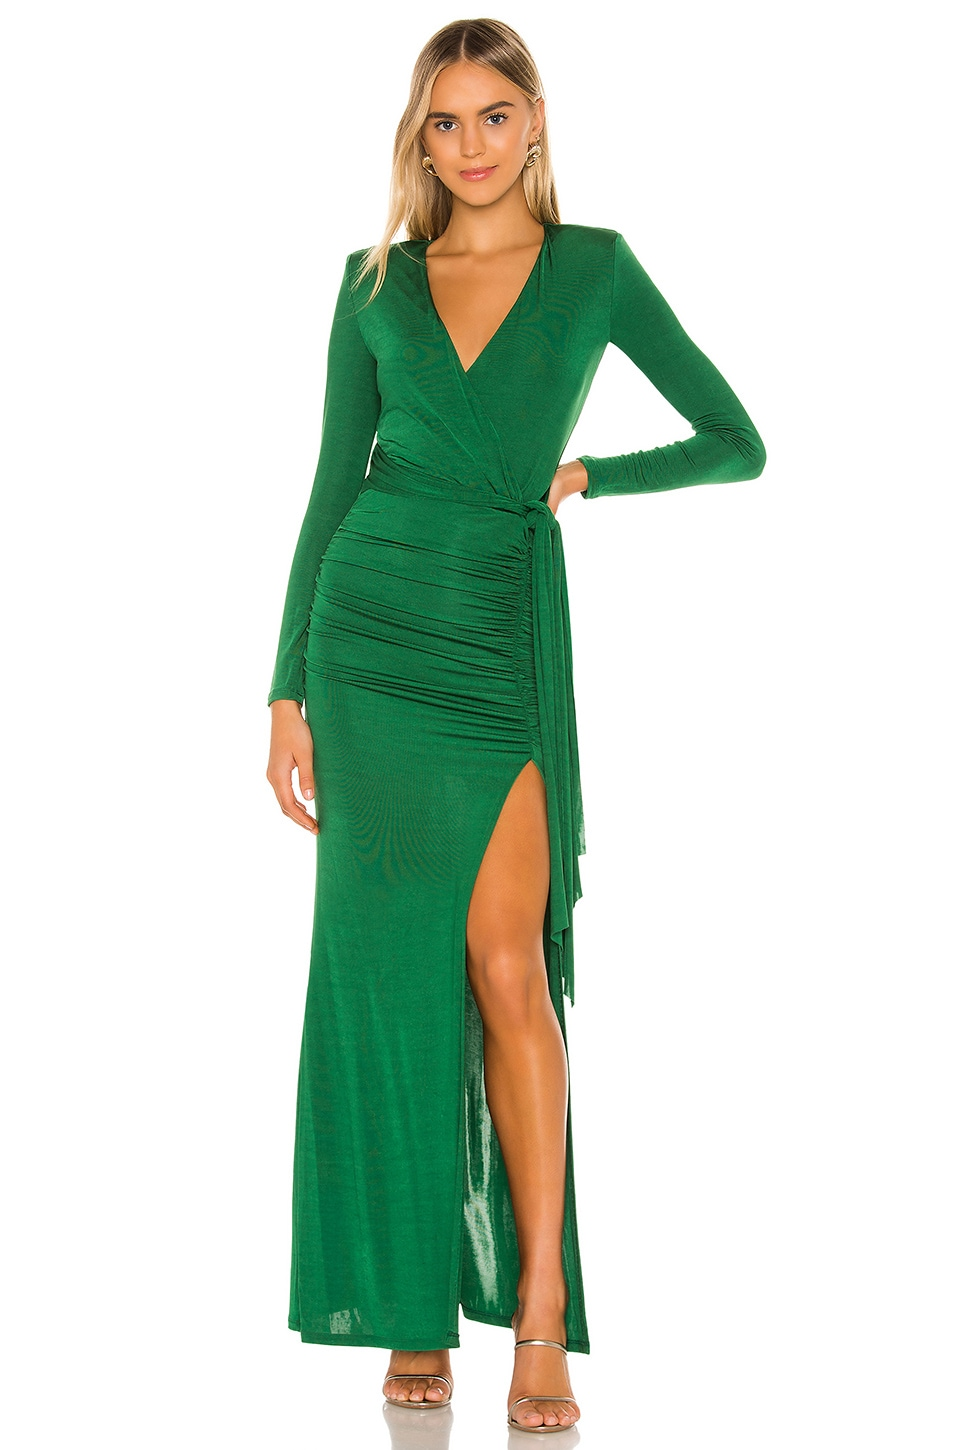 Alice + Olivia Kyra Deep V Drapey Maxi Dress in Basil